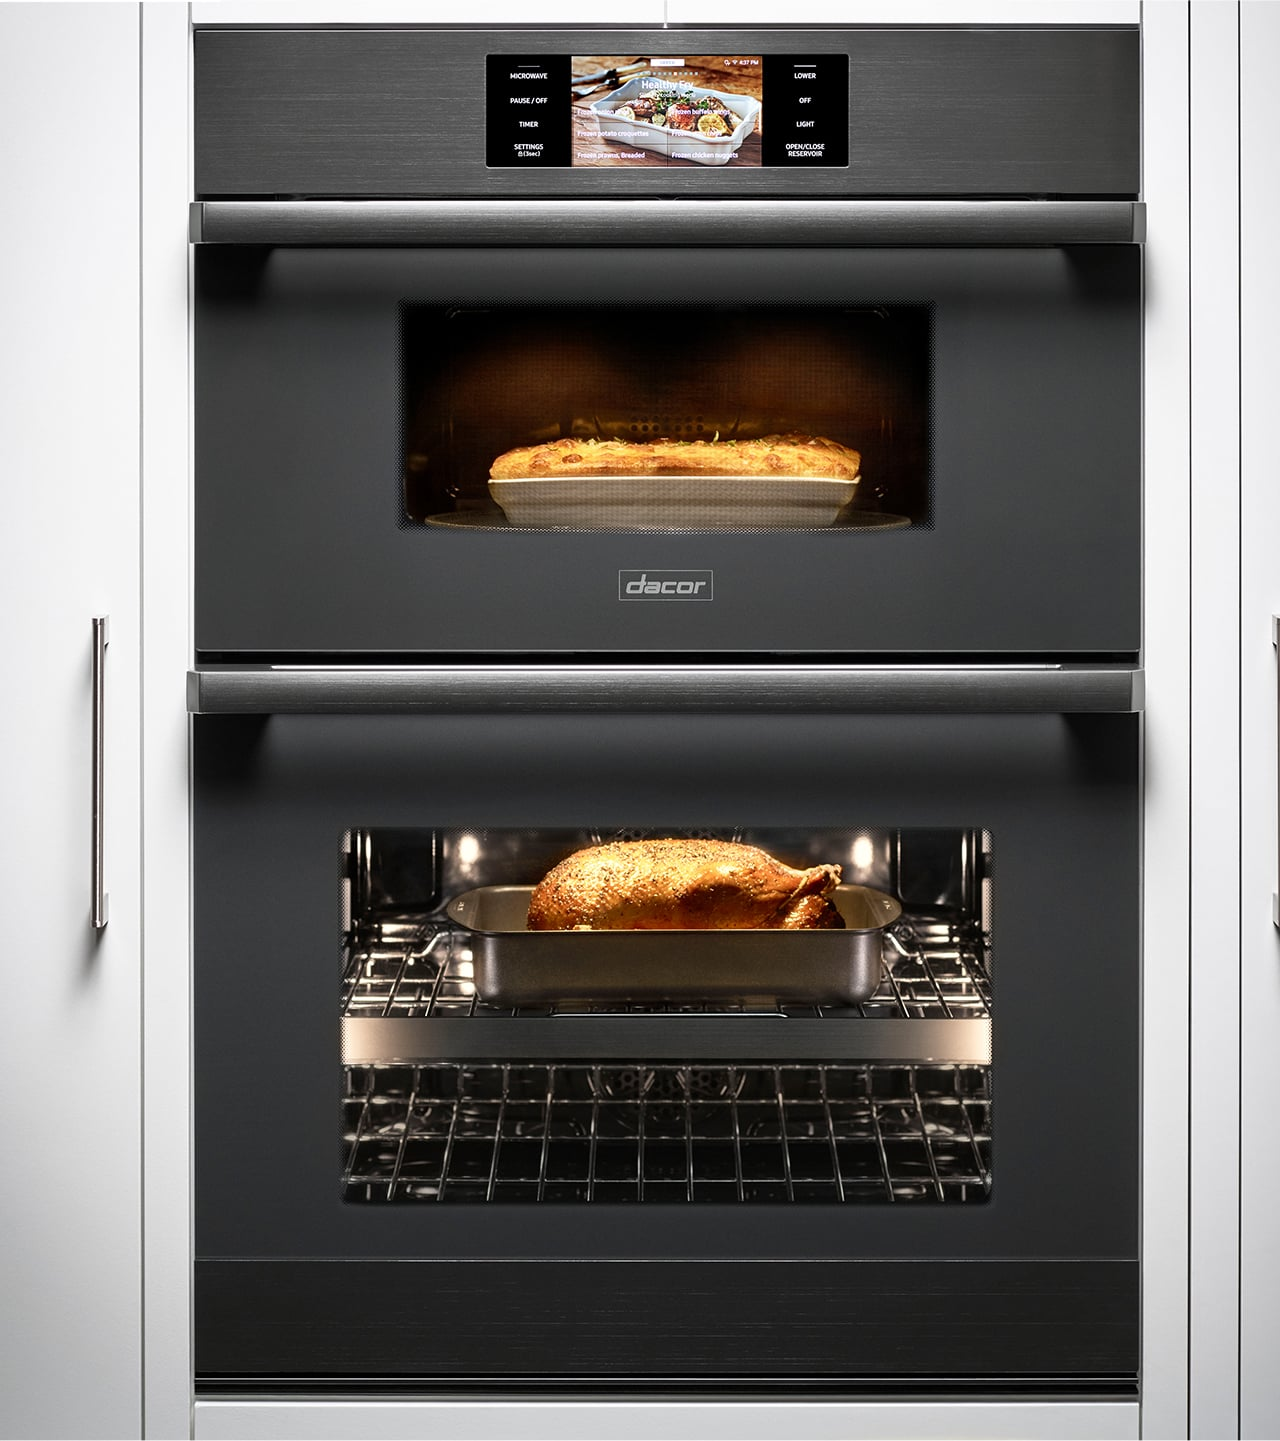 Dacor Modernist combo oven